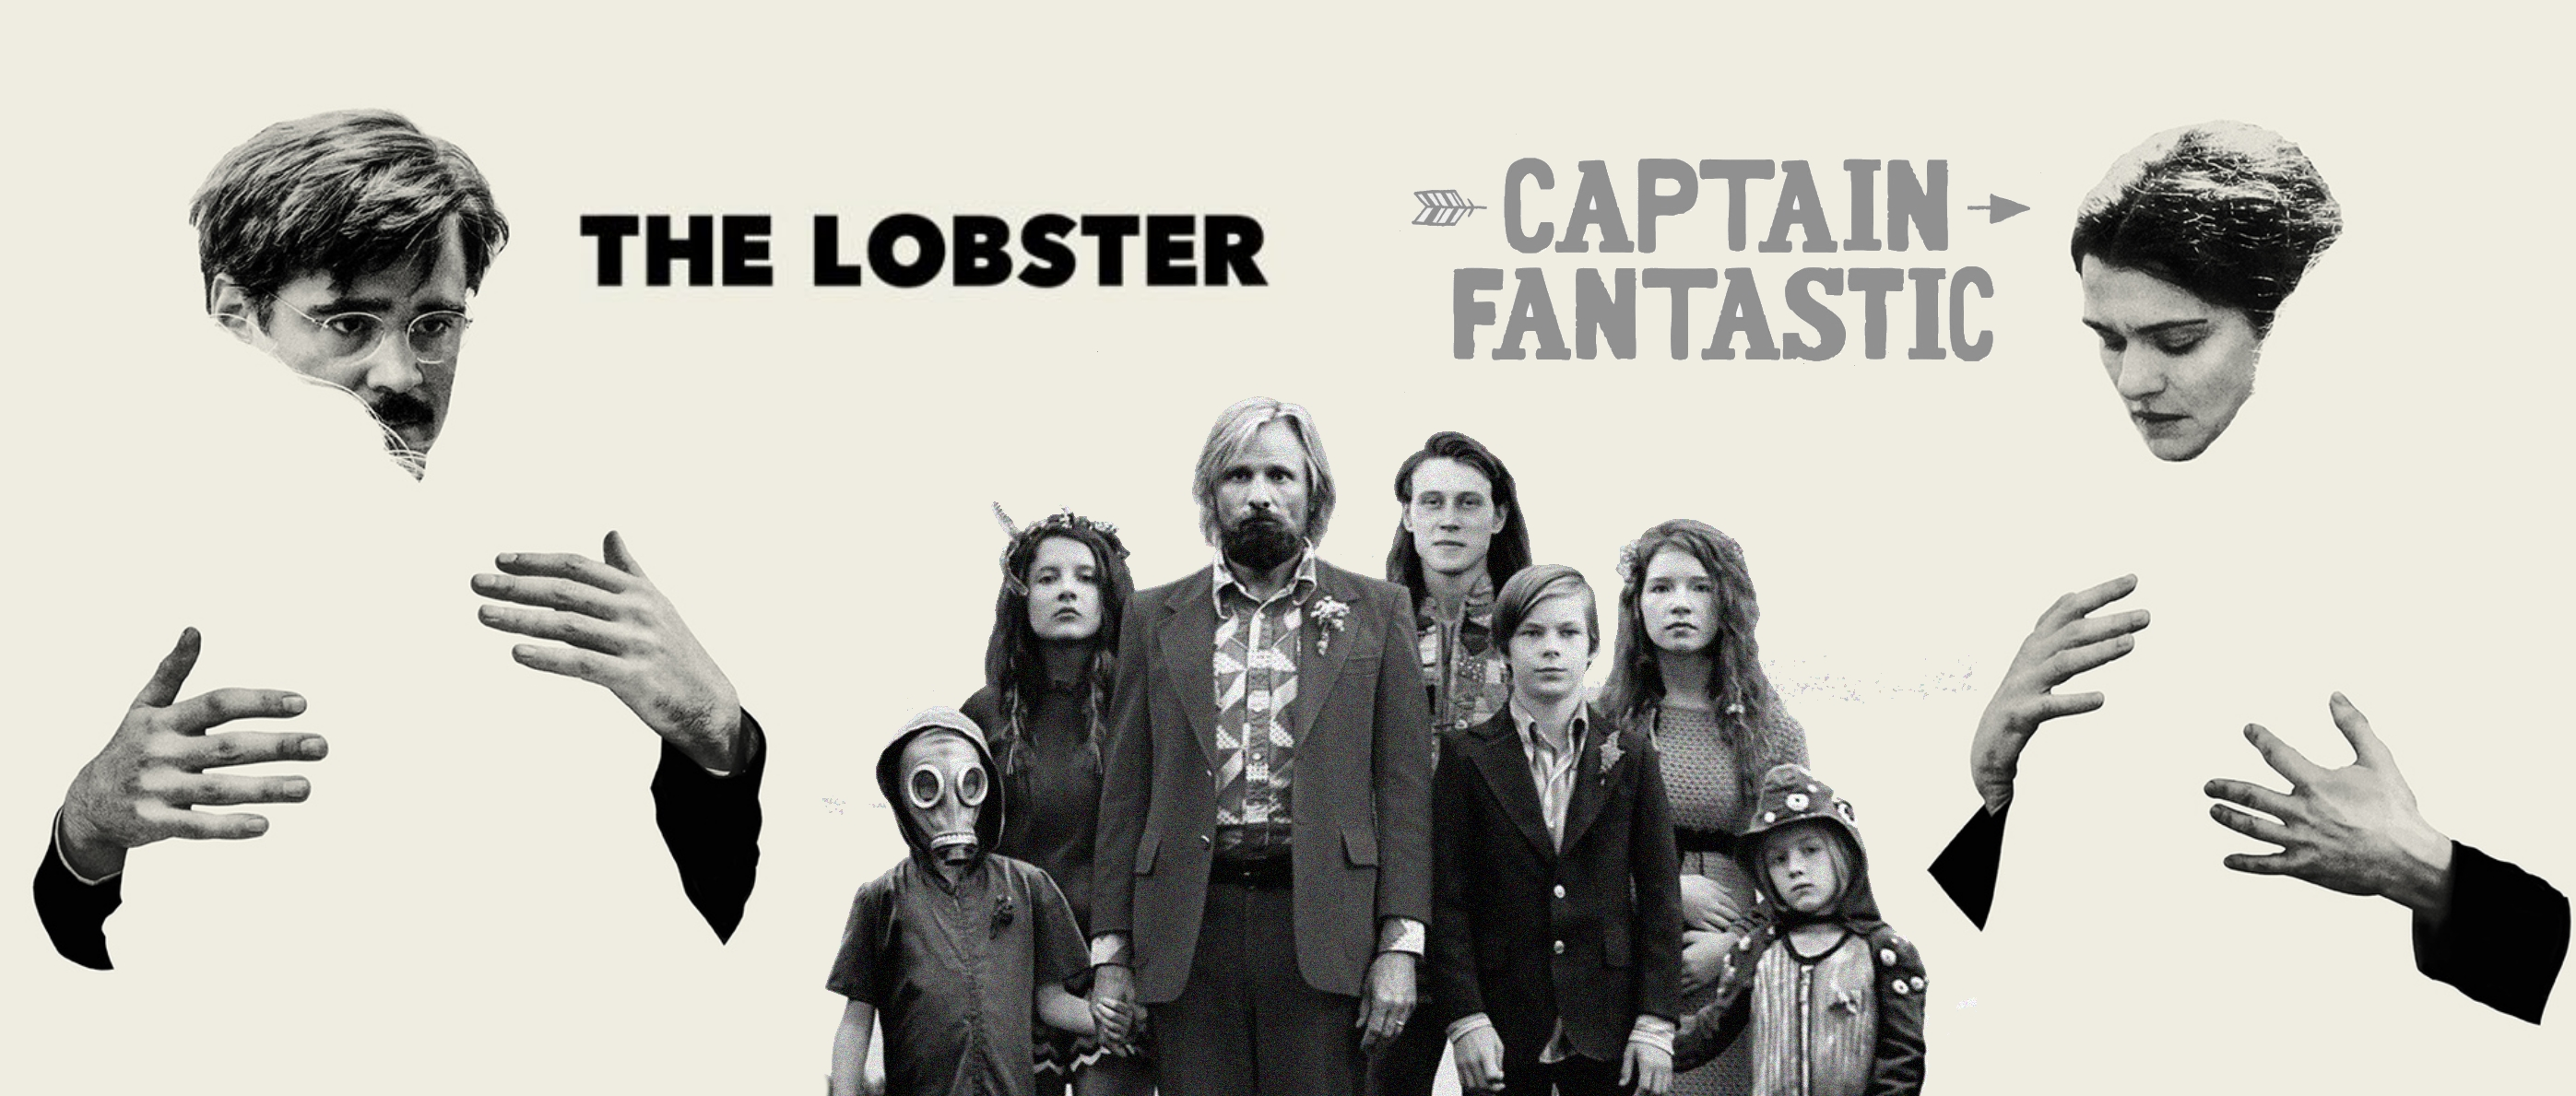 LobsterFantastic mashup Graphic BeforeWeDieFilms.com